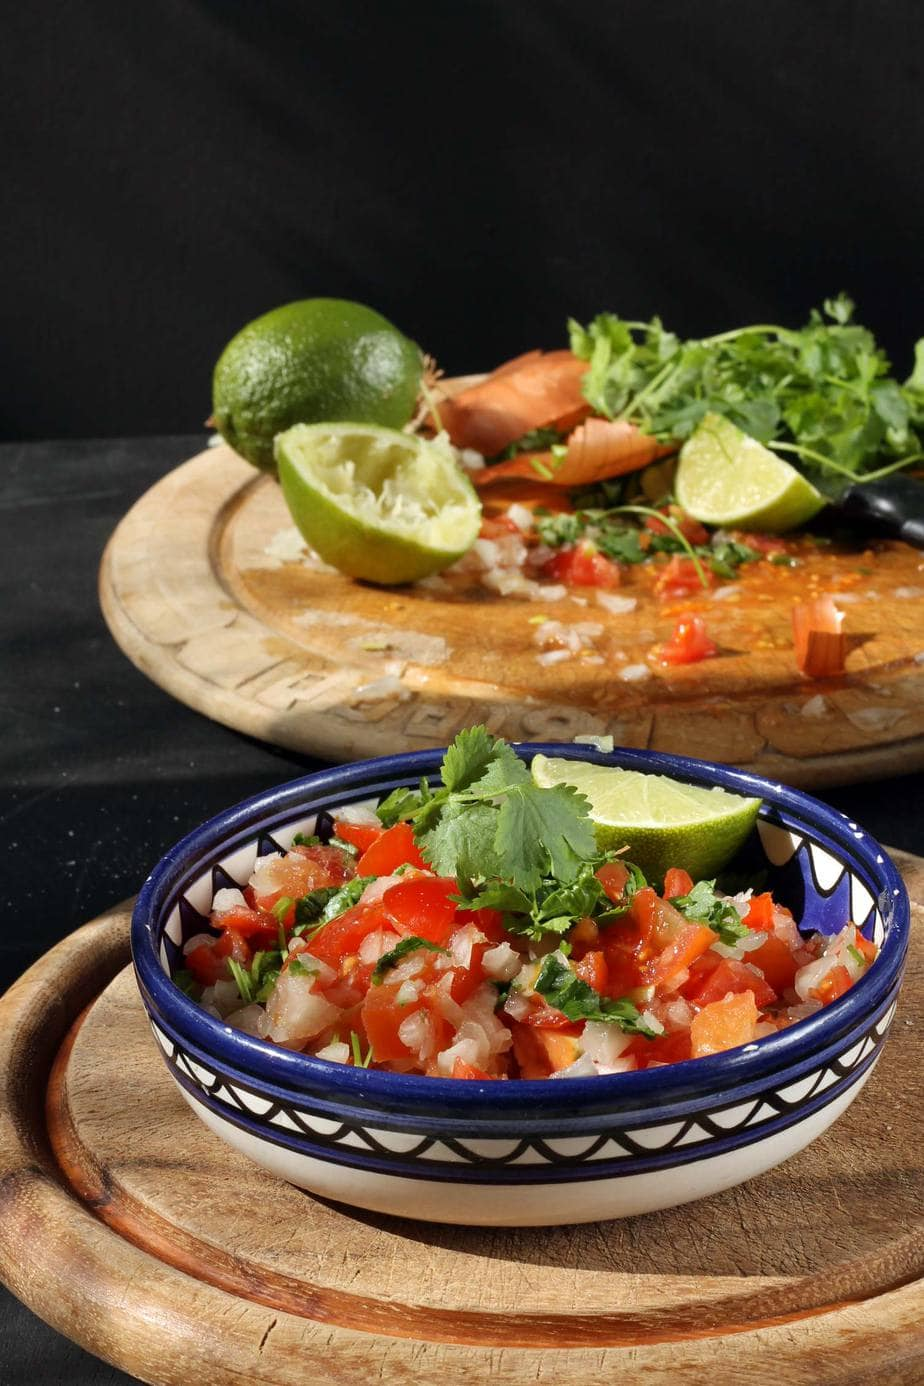 A bowl of Pico de Gallo on a wooden board, with coriander/cilantro on top and a wedge of lime.